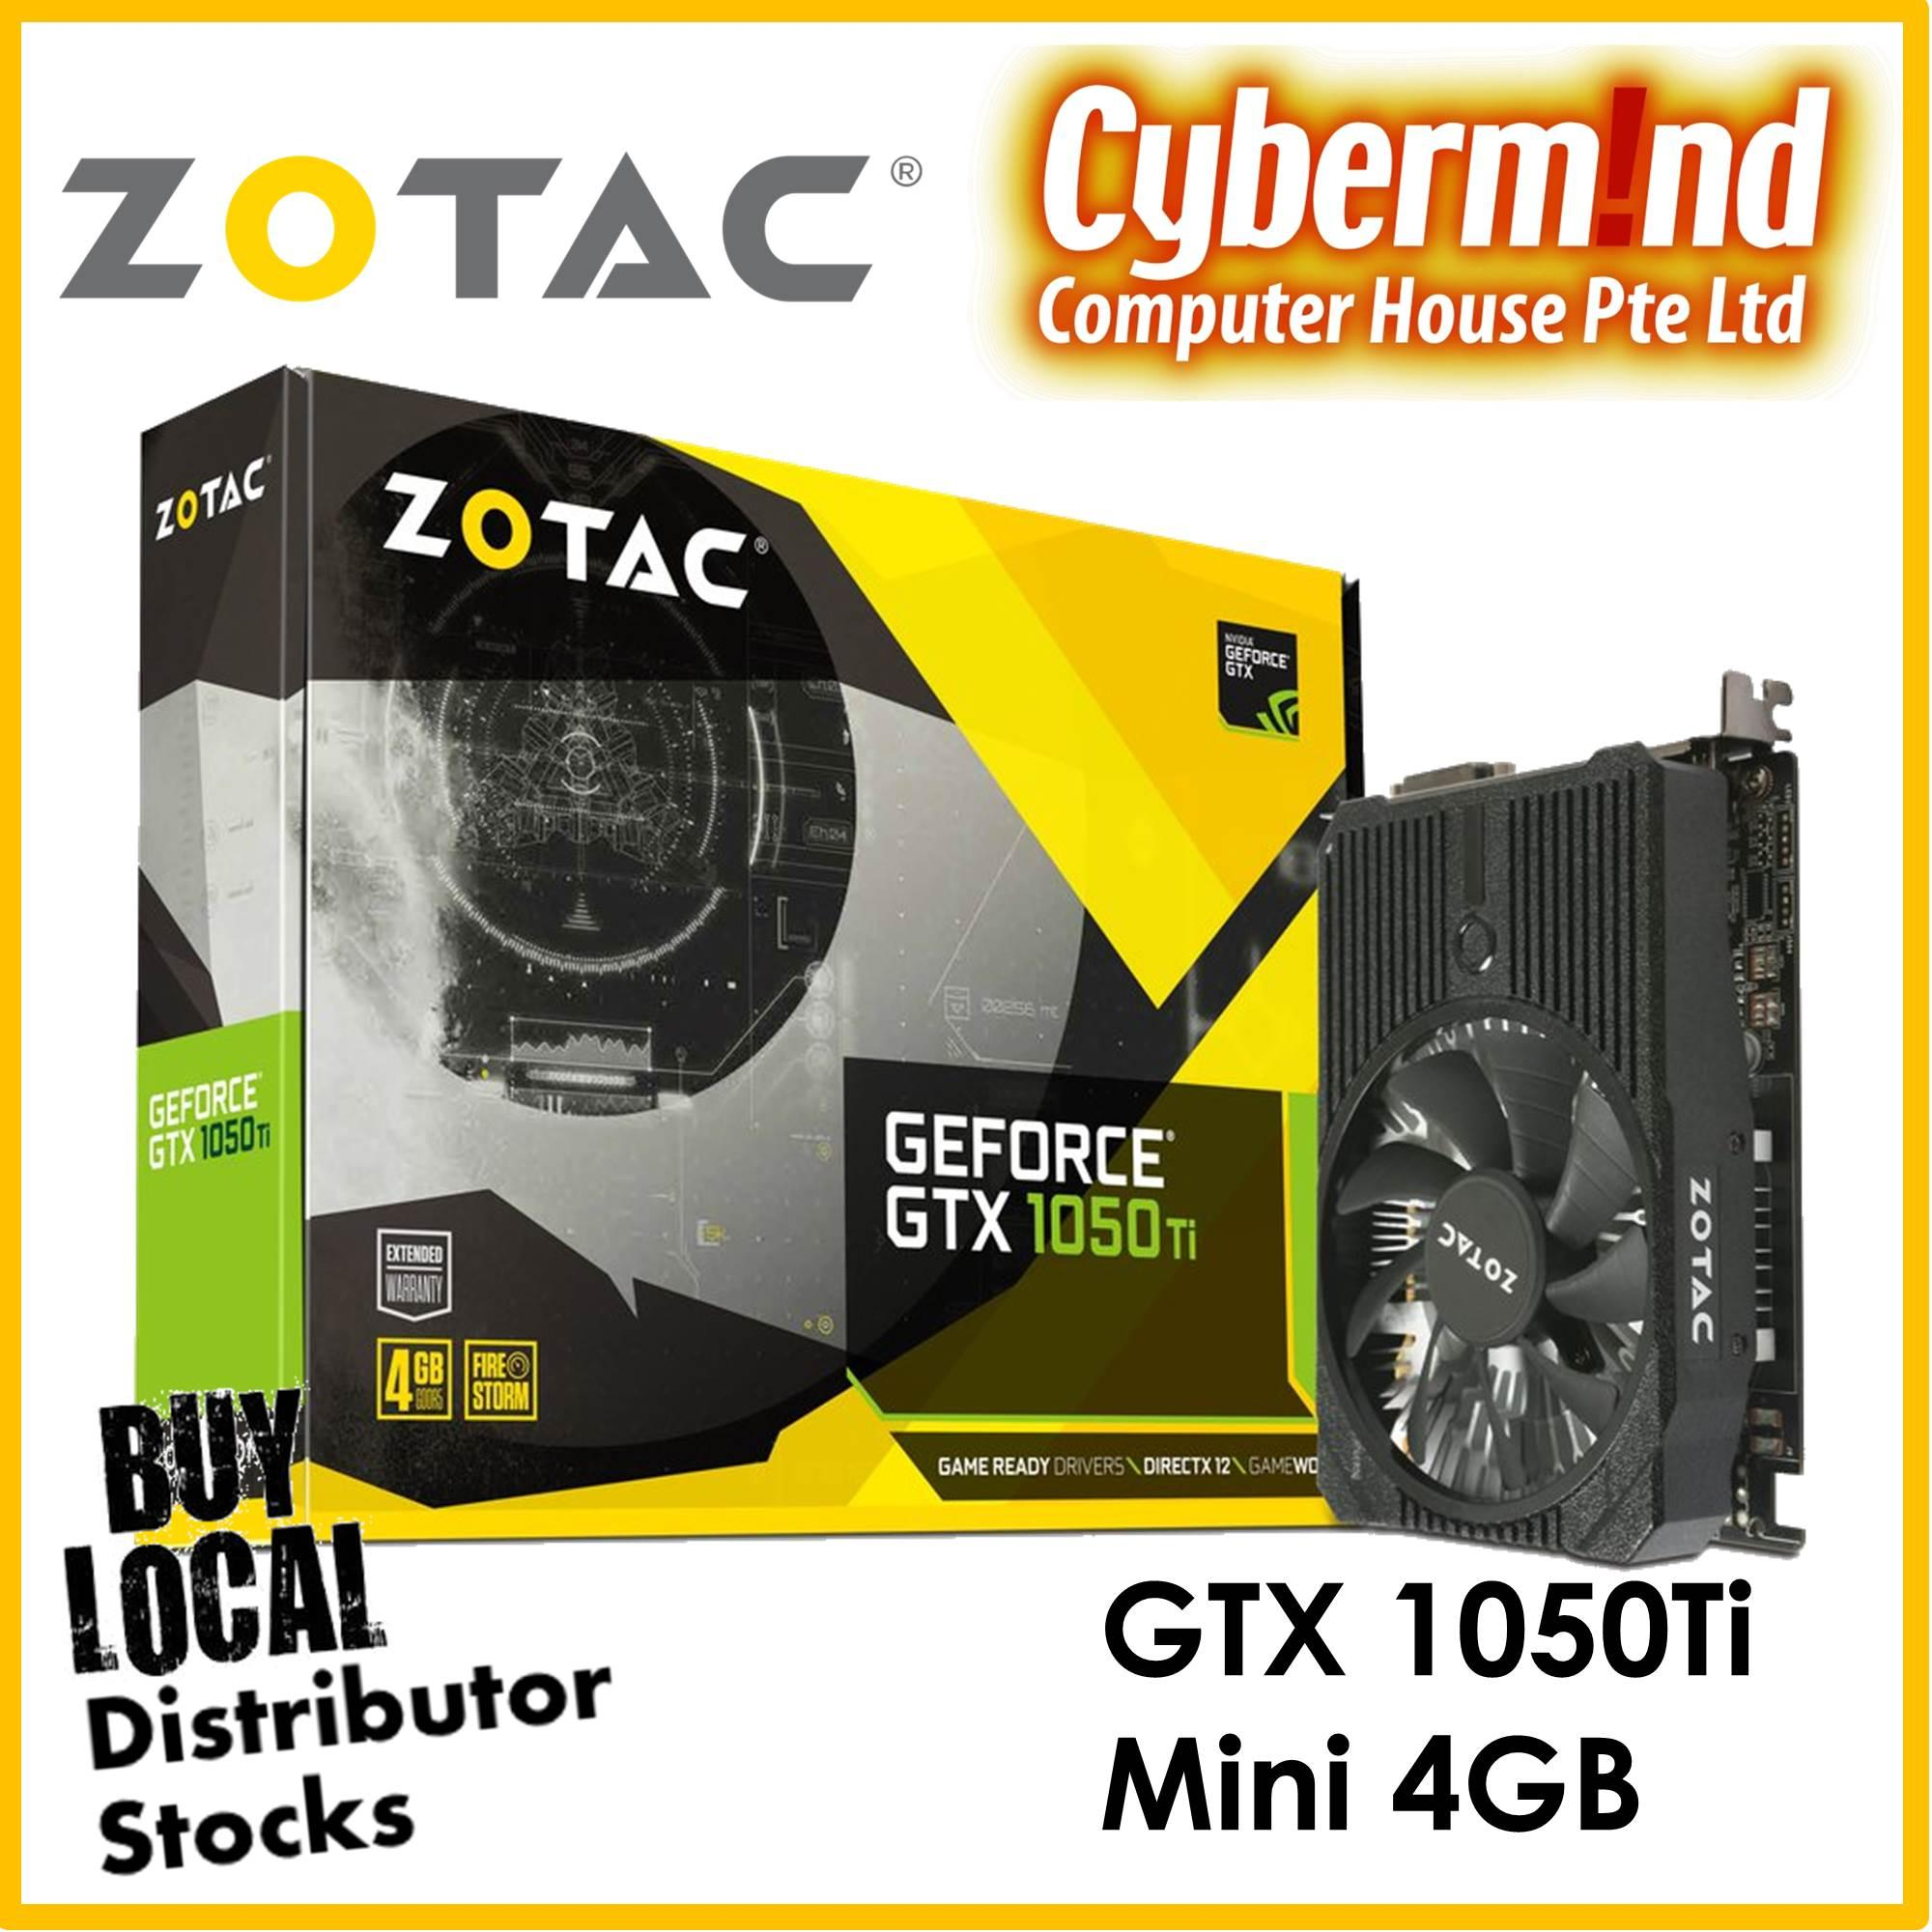 Who Sells The Cheapest Zotac Geforce® Gtx 1050 Ti Gtx1050Ti Gtx 1050Ti Mini 4Gb Gddr5 Brought To You By Cybermind 20Years In Singapore Online